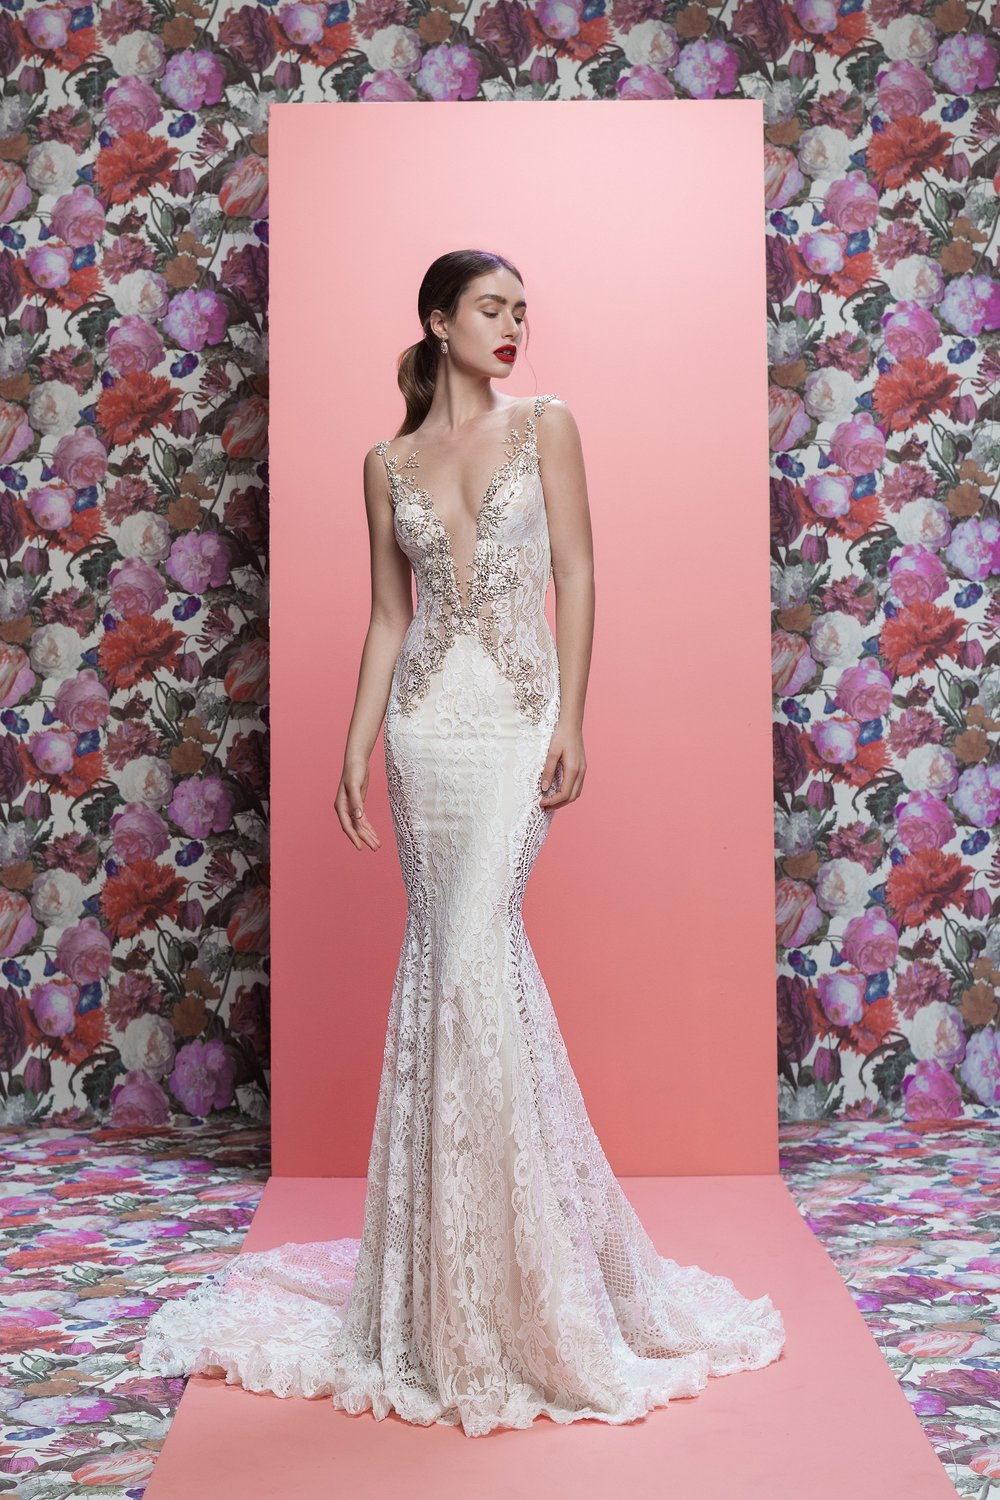 Luca-F-galia-lahav-bridal-spring-2019-vogue-16apr18-pr.jpg